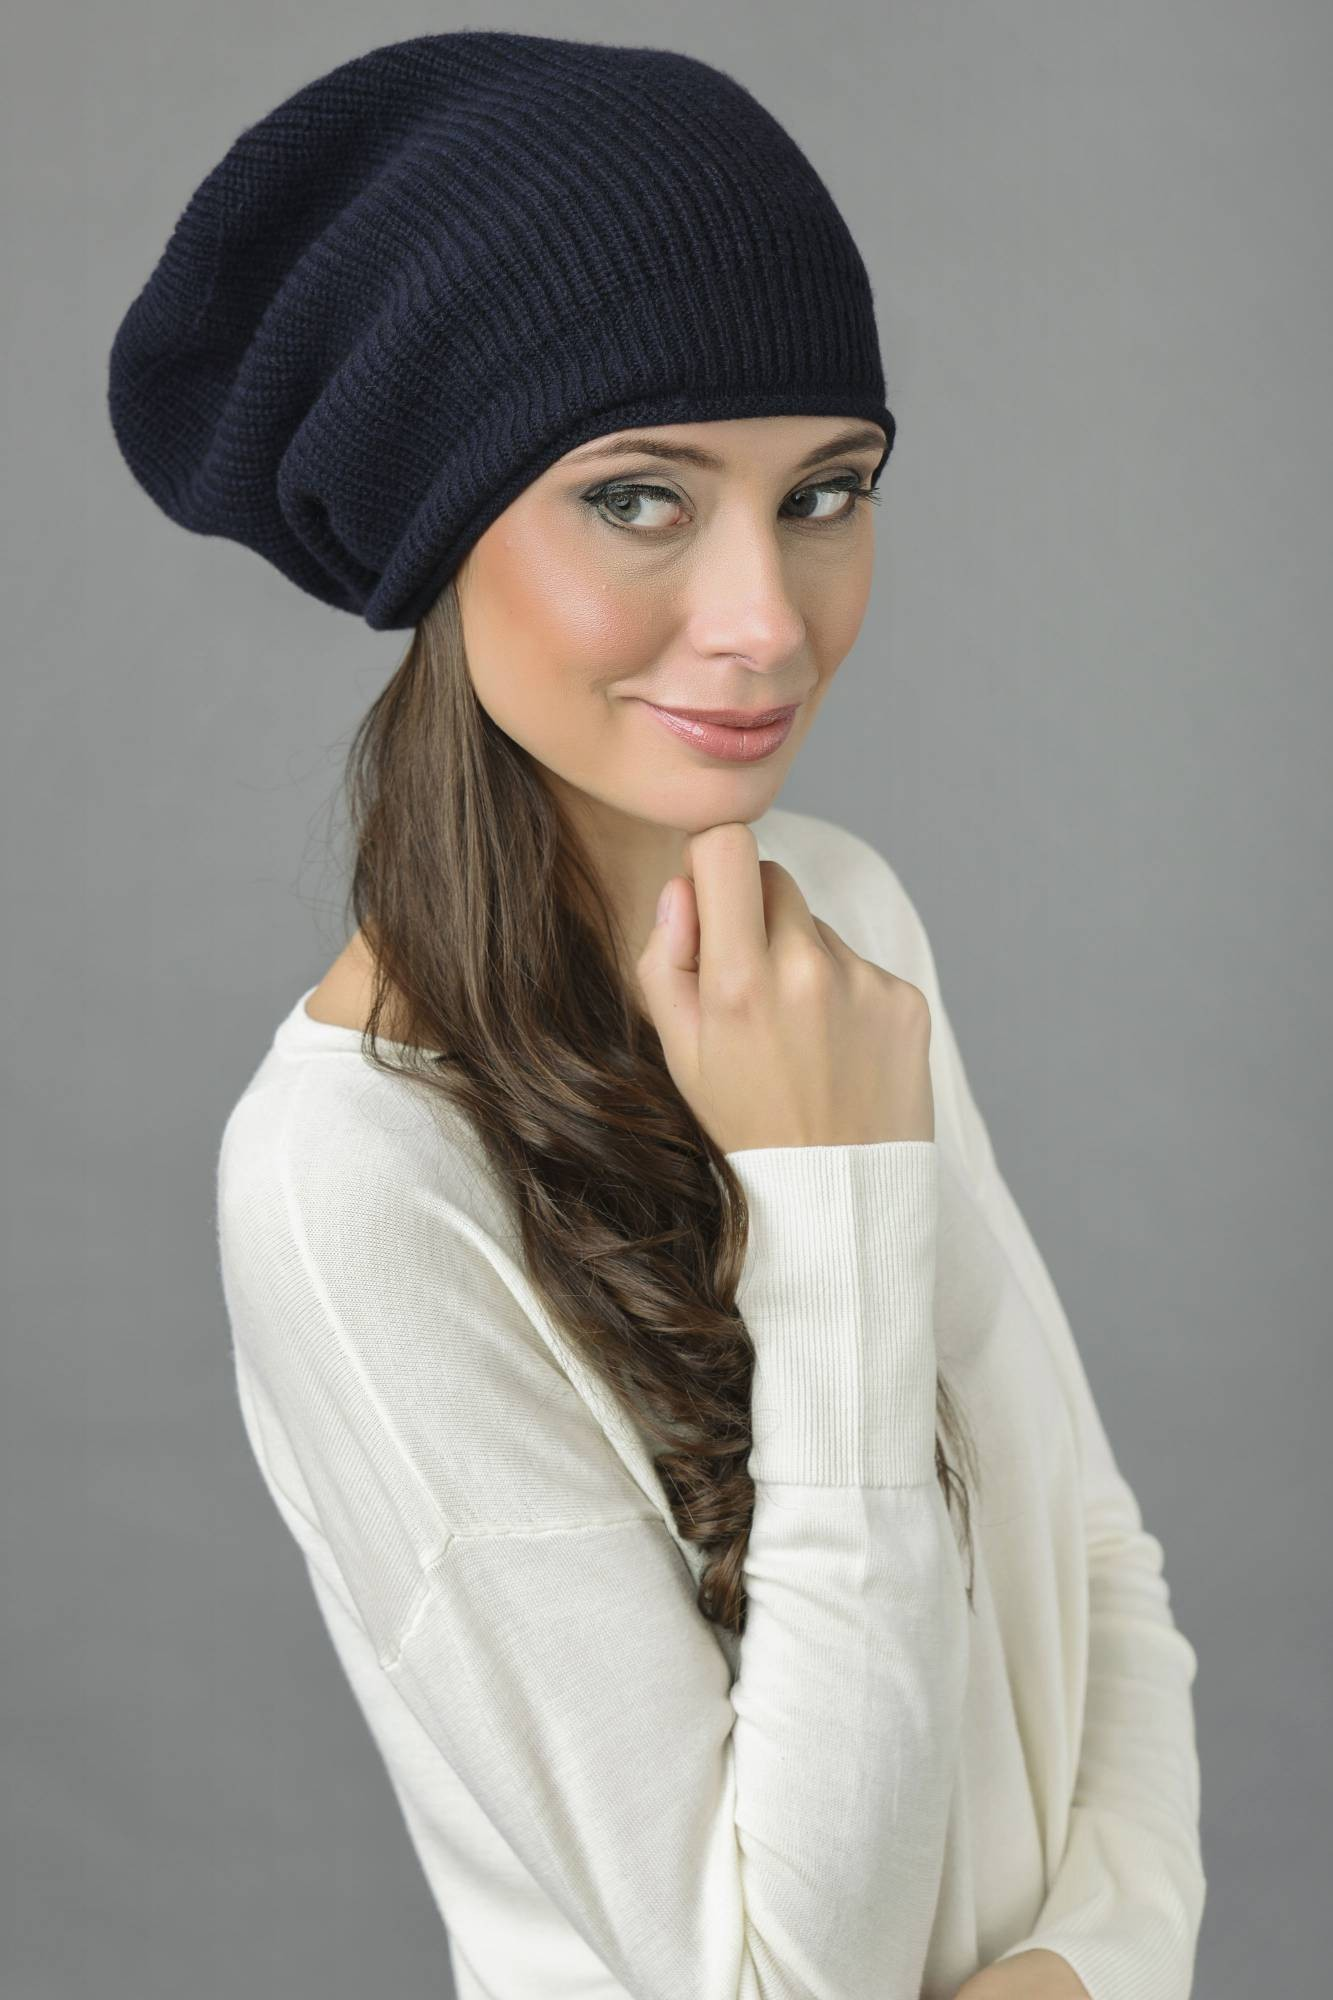 ad8293f53 Pure Cashmere Ribbed Knitted Slouchy Beanie Hat in Navy Blue